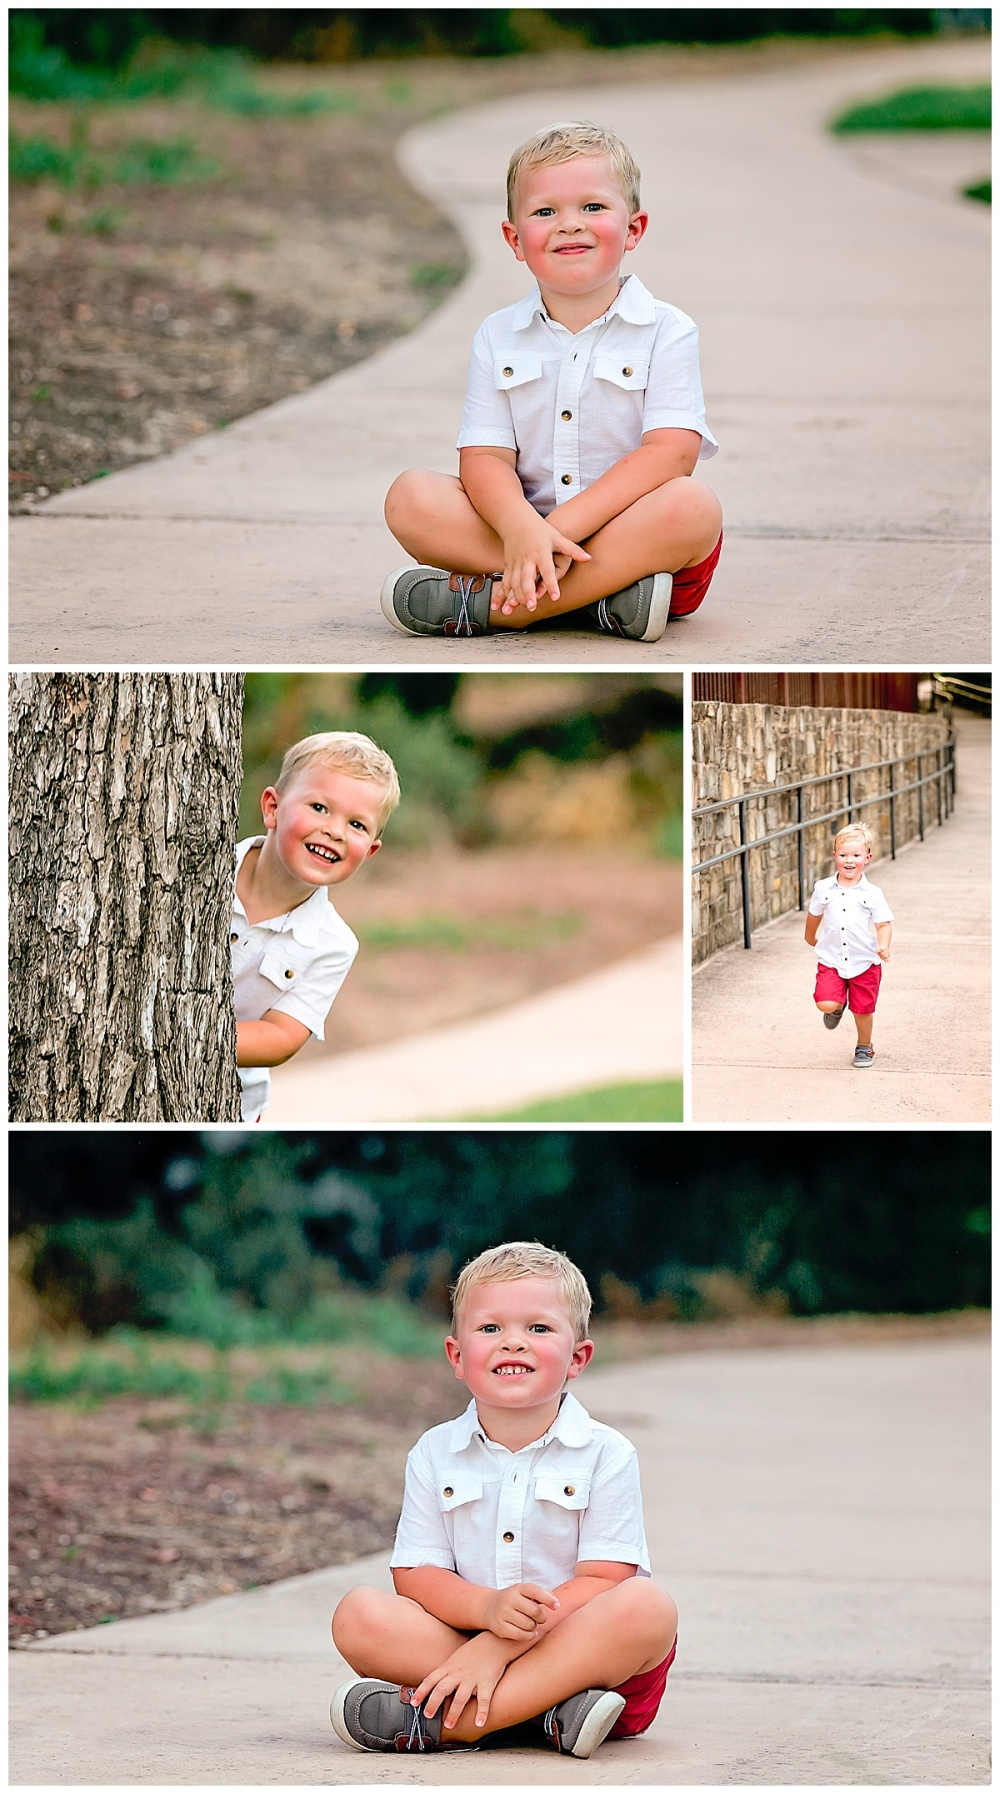 Carly-Barton-Photography-Family-Photos-Walnut-Springs-Park-Seguin-Texas-Pierdolla-Birthday_0009.jpg